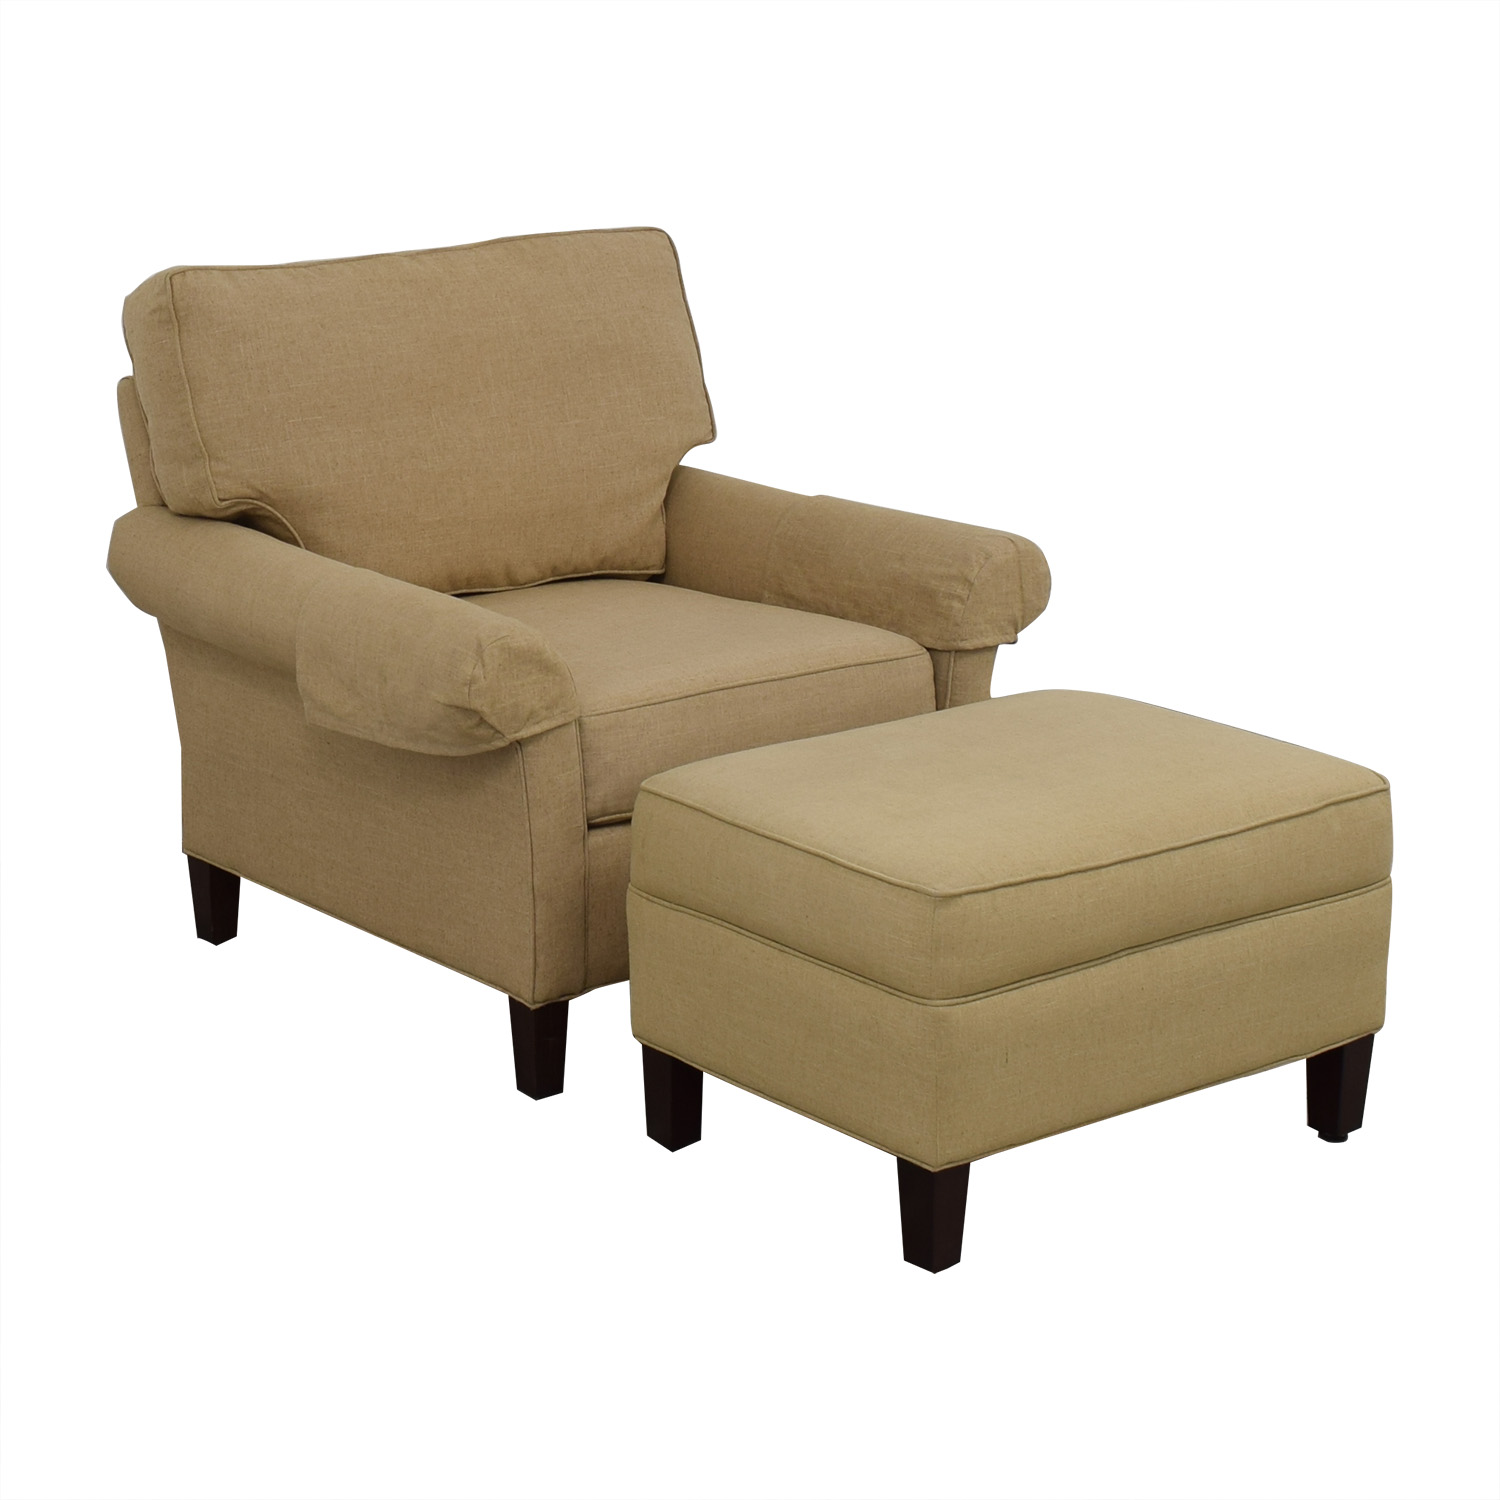 80 Off Calico Callico Corner Armchair And Ottoman Chairs